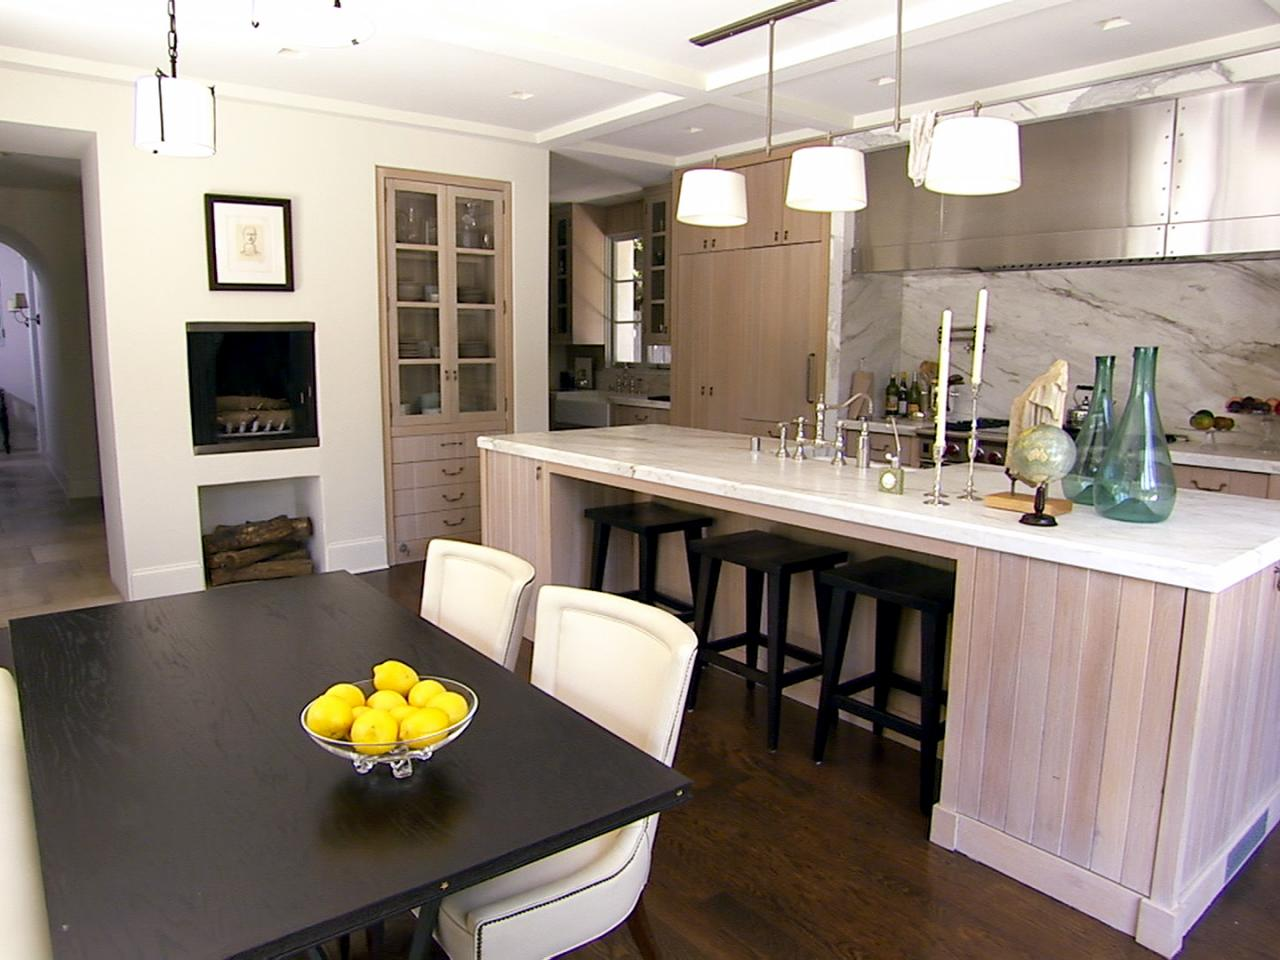 Kitchen Peninsula Ideas New Peninsula Kitchen Design Pictures Ideas & Tips From Hgtv  Hgtv Review